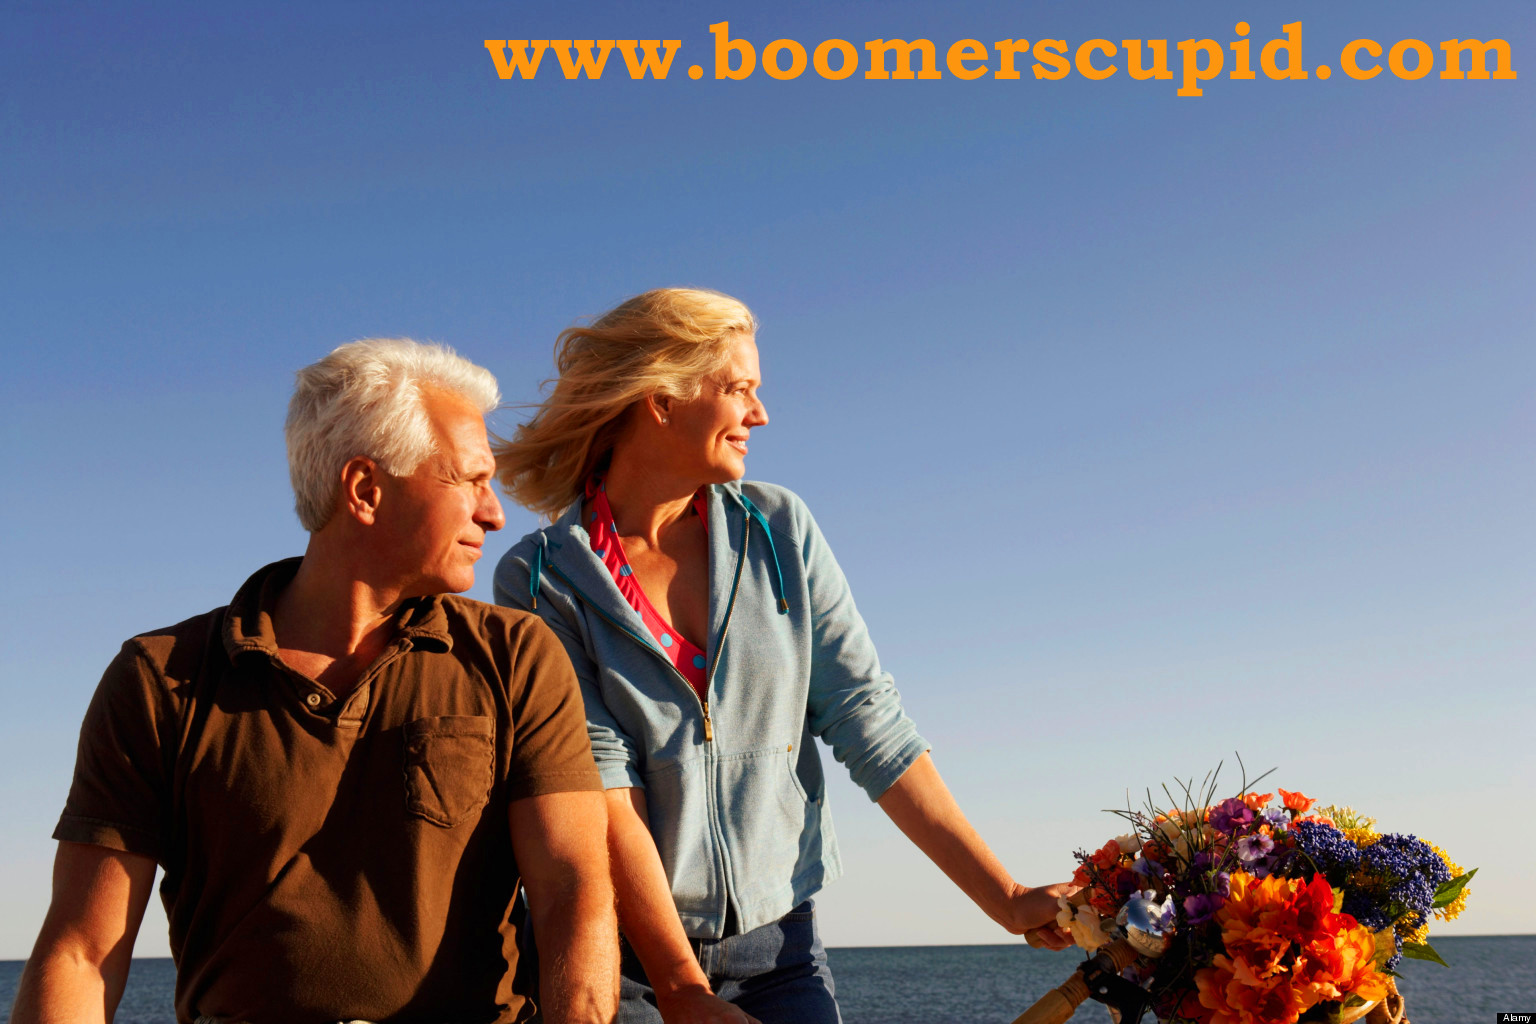 tennessee senior singles Single senior travelers don't have to pay high single supplements on tours and cruises learn about single-friendly tour operators and cruise lines.